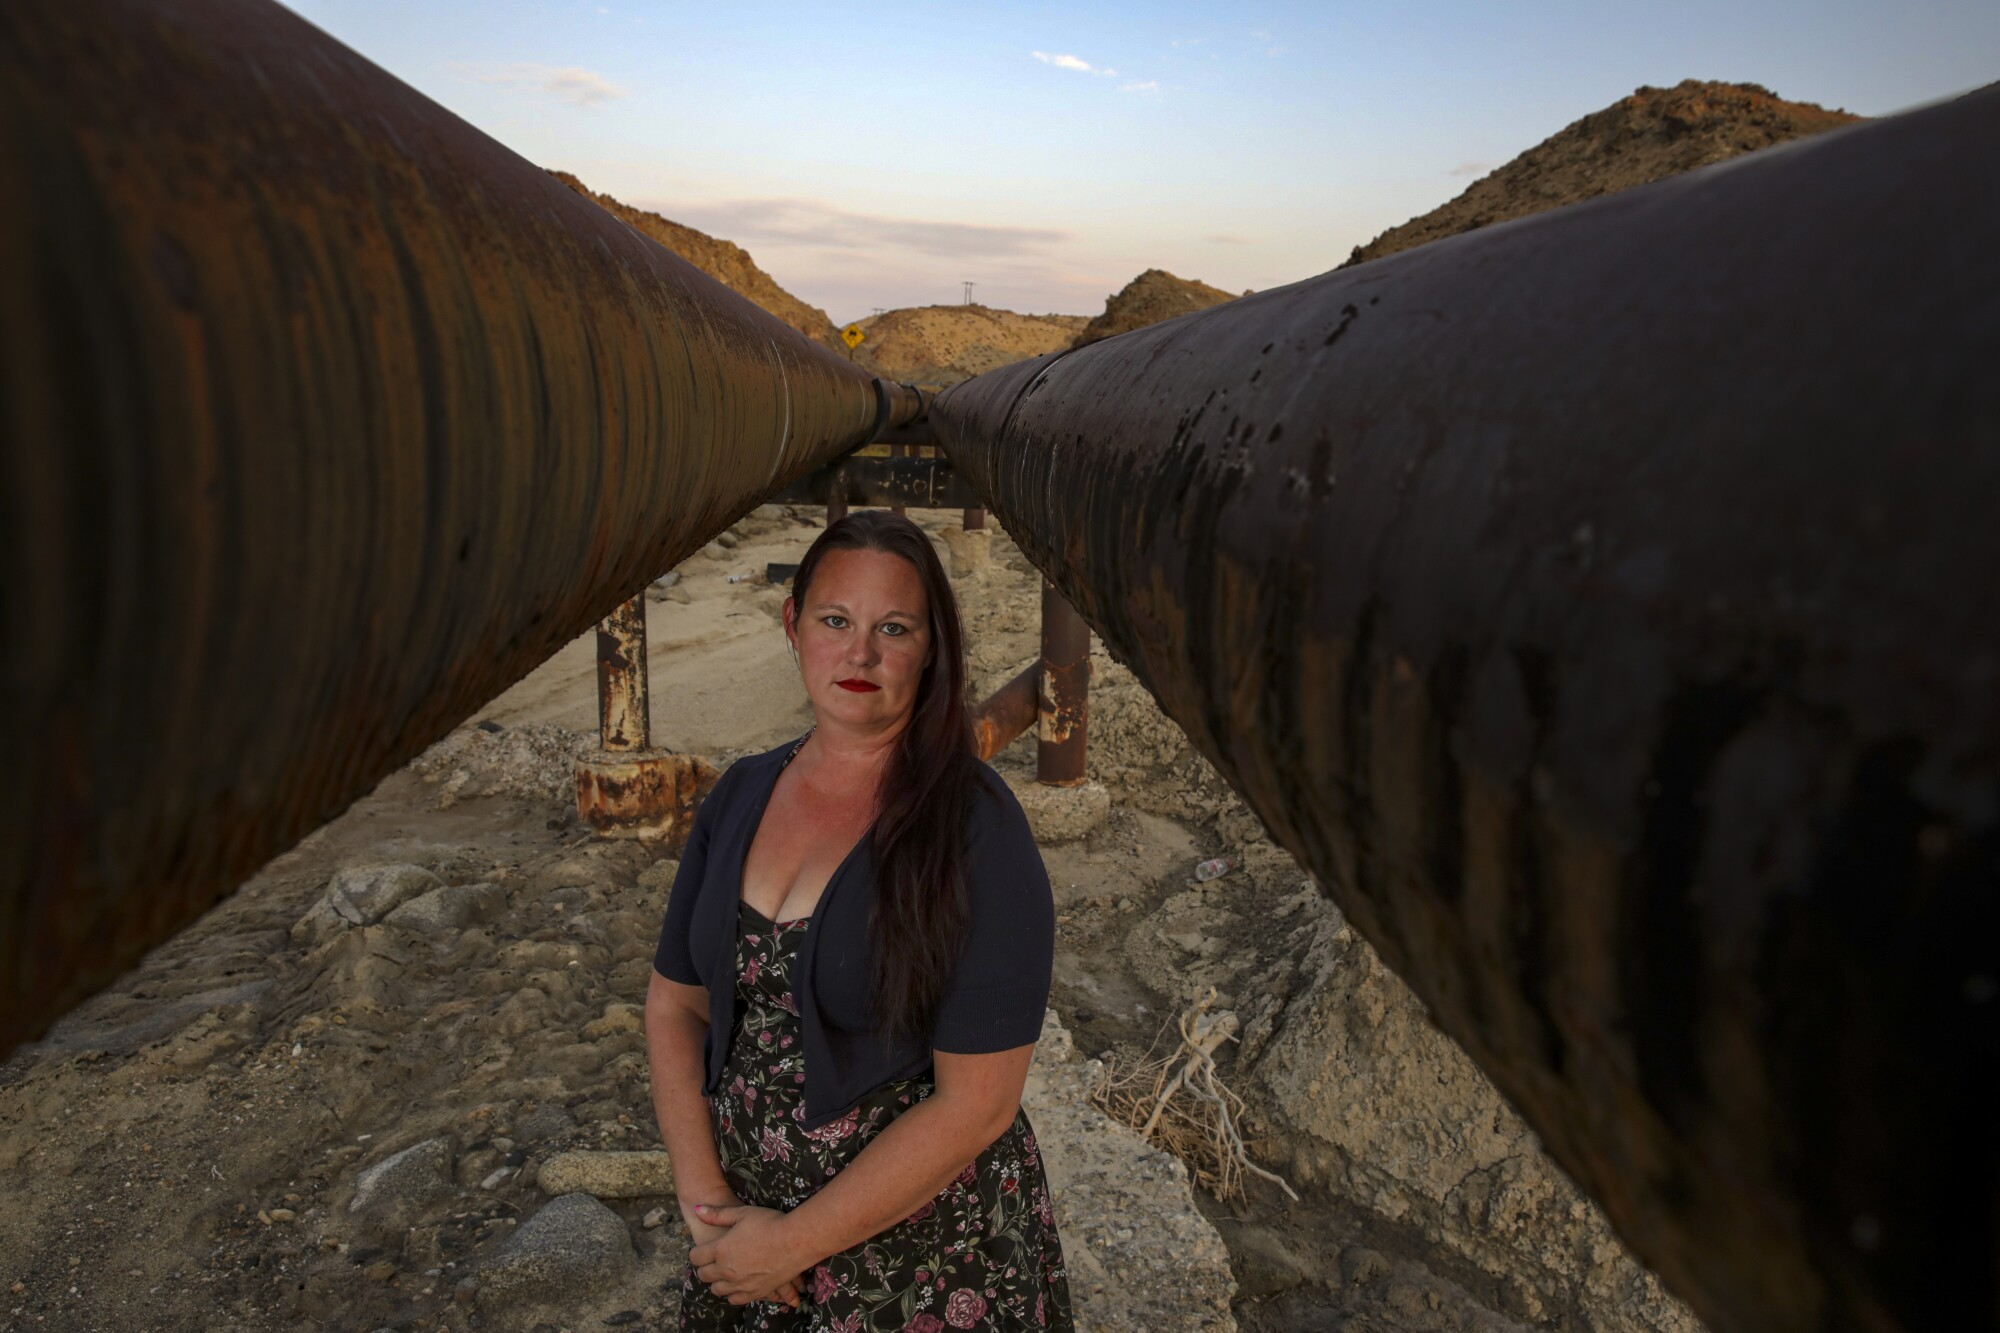 A woman stands between two large elevated water pipes